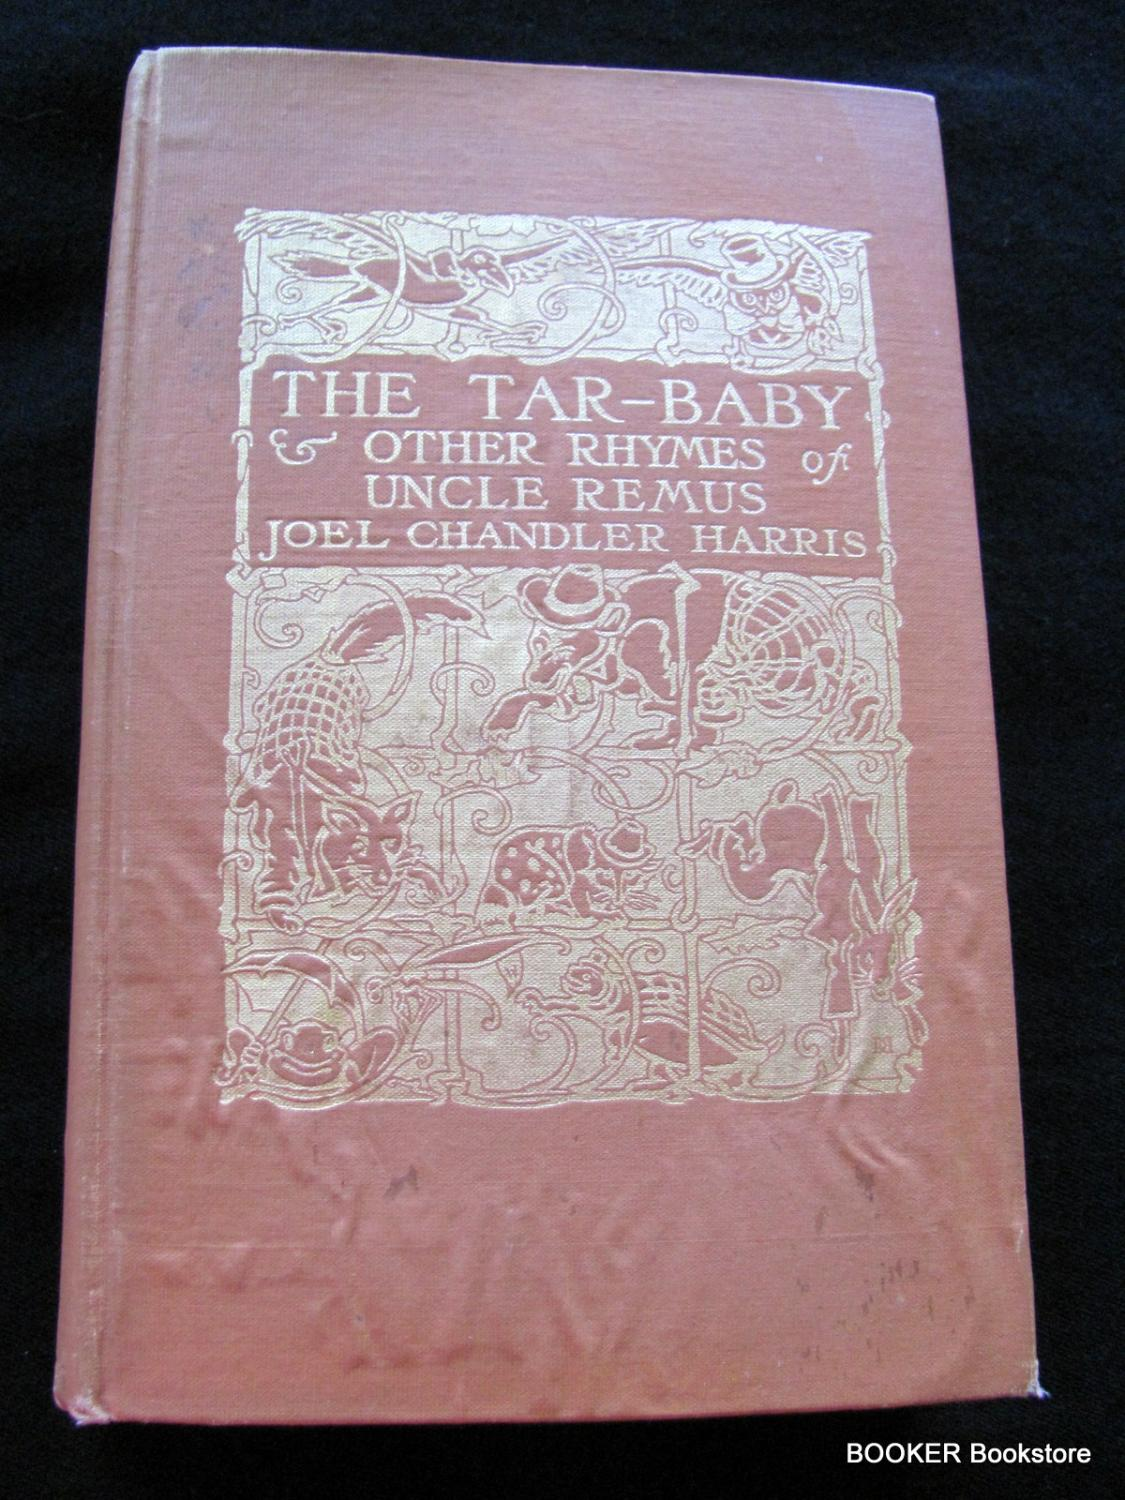 The Tar Baby & Other Rhymes of Uncle Remus ( double signed plus ephemera) Joel Chandler Harris Very Good Hardcover